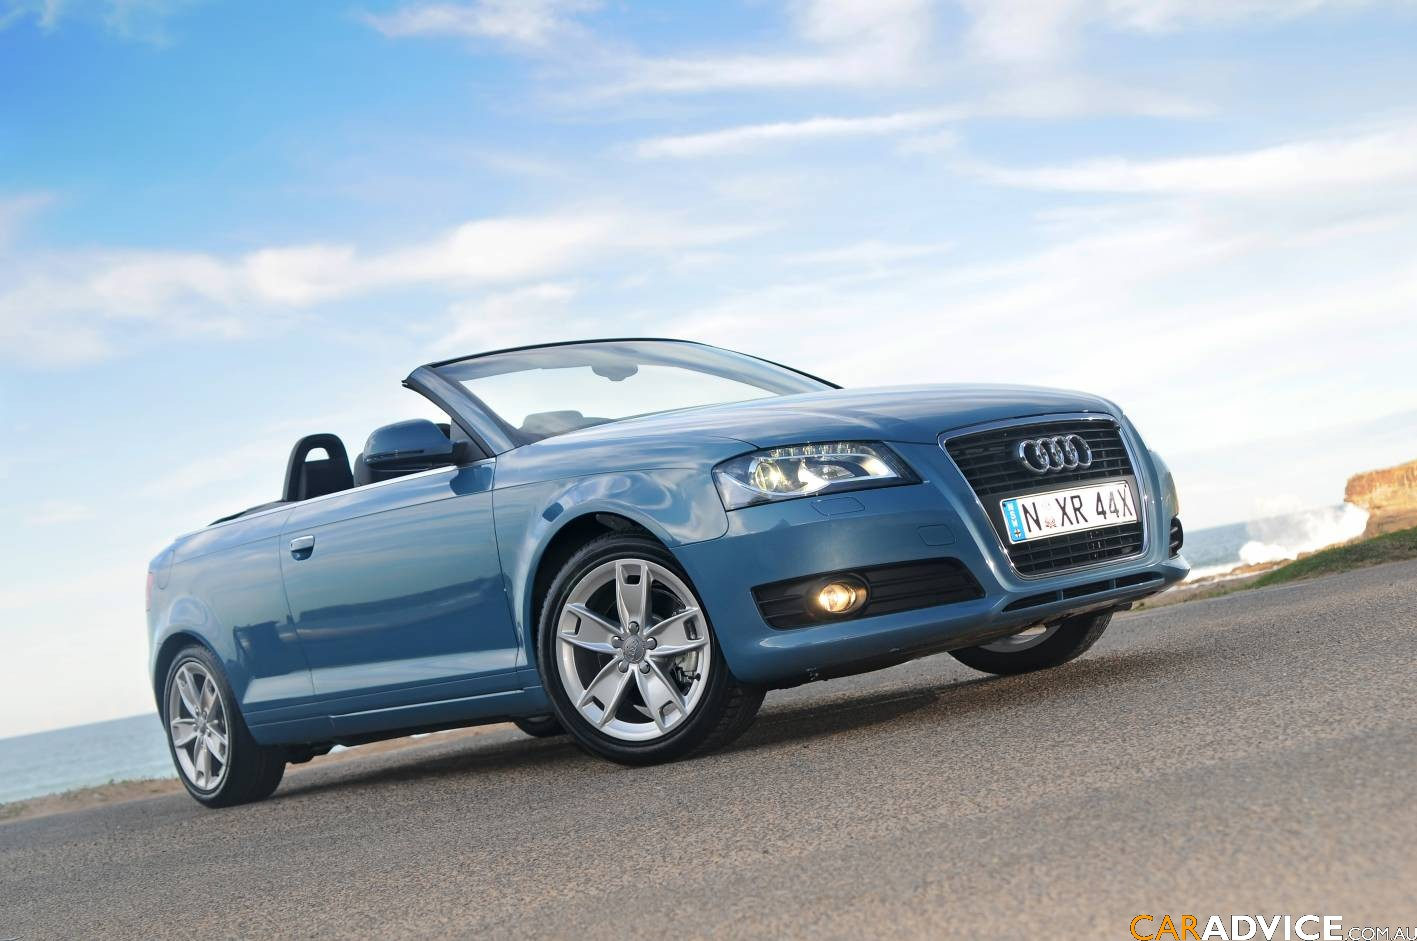 2008 audi a3 cabriolet photos 1 of 10. Black Bedroom Furniture Sets. Home Design Ideas